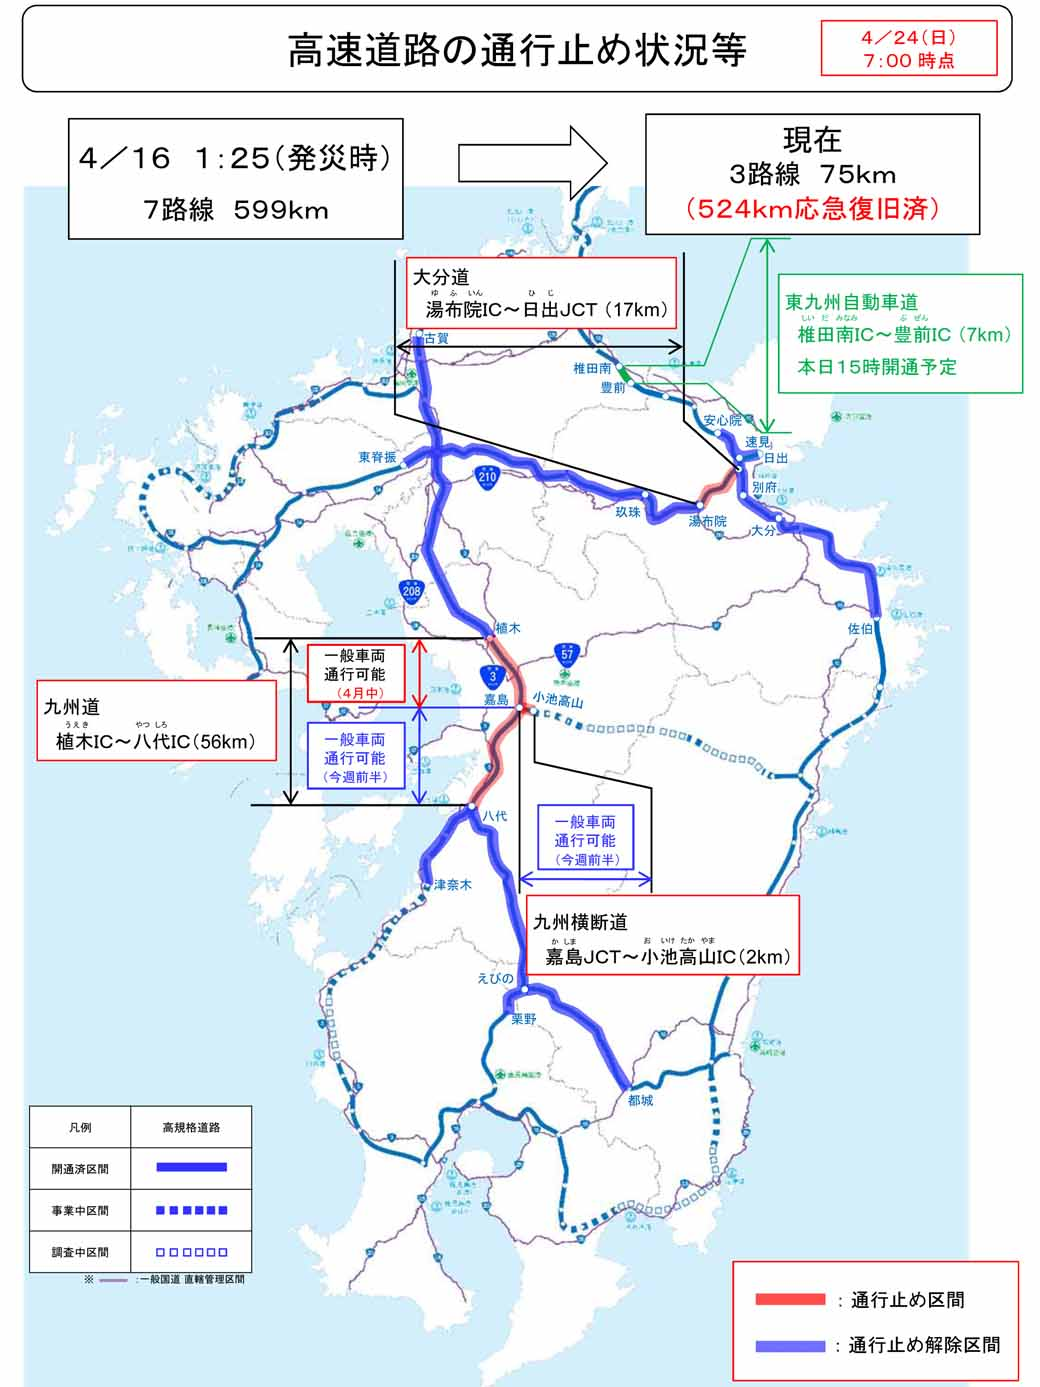 ministry-of-land-infrastructure-and-transport-the-general-open-the-kyushu-road-whole-line-by-the-end-of-the-month-north-south-highway-of-the-aorta-recovery20160425-2